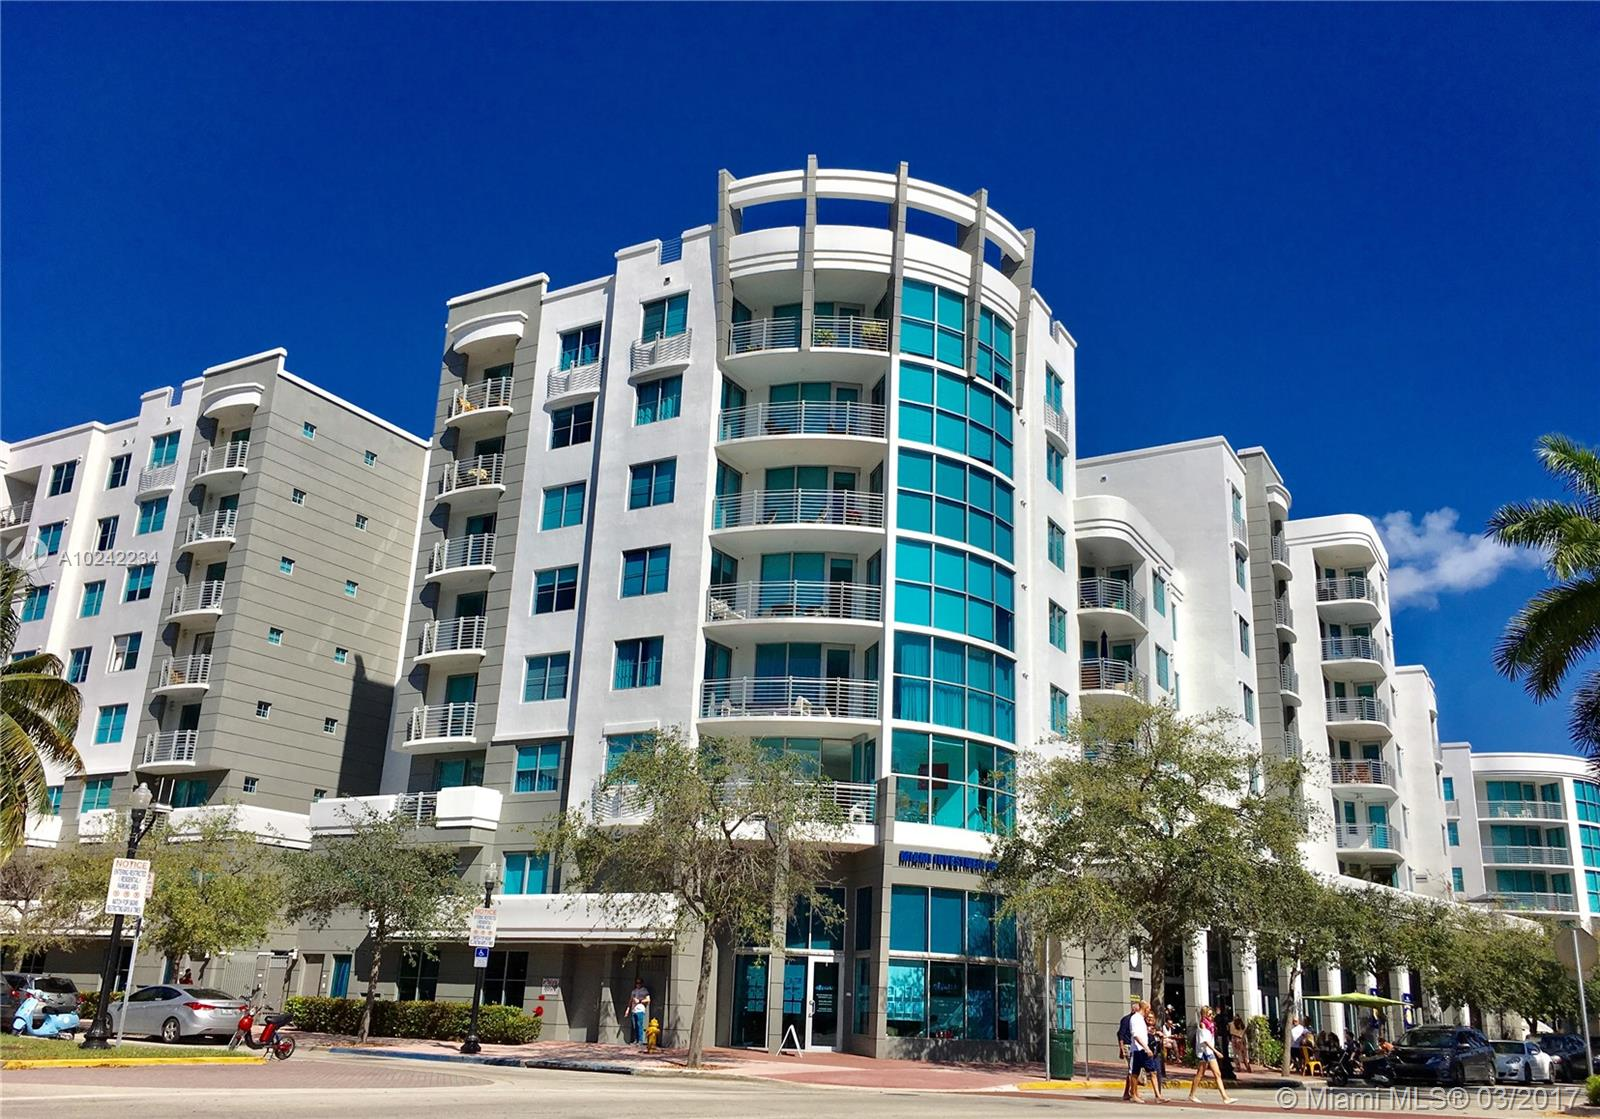 BEAUTIFUL CONDO 2/2 LOCATED IN THE HEART OF SOUTH BEACH SURROUNDED OF RESTAURANTS AND JUST WALKING  DISTANCE TO THE BEACH. OPEN KITCHEN TO THE LIVING AREA AND DINNING ROOM. GRANITE COUNTERS, ITALIAN CABINETRY AND SS APPLIANCES. FURNISHED